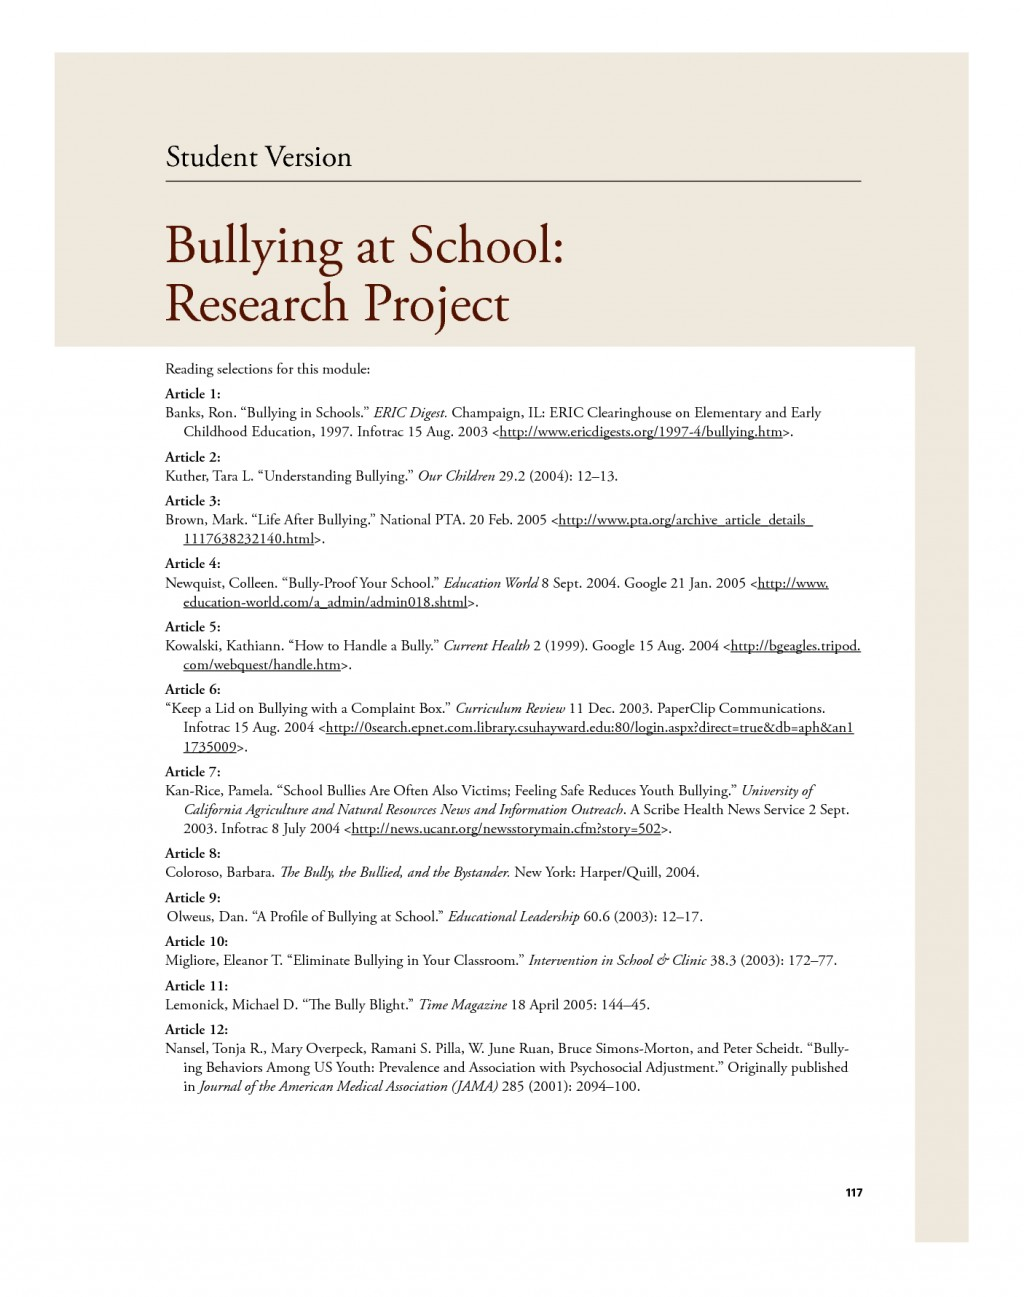 008 Essay On Bullying Essays In School Effects Of The Main Ways To Stop Bvj88 How Avoid At Prevent Spm Deal With High Schools Amazing Cause And Effect Cyberbullying Large